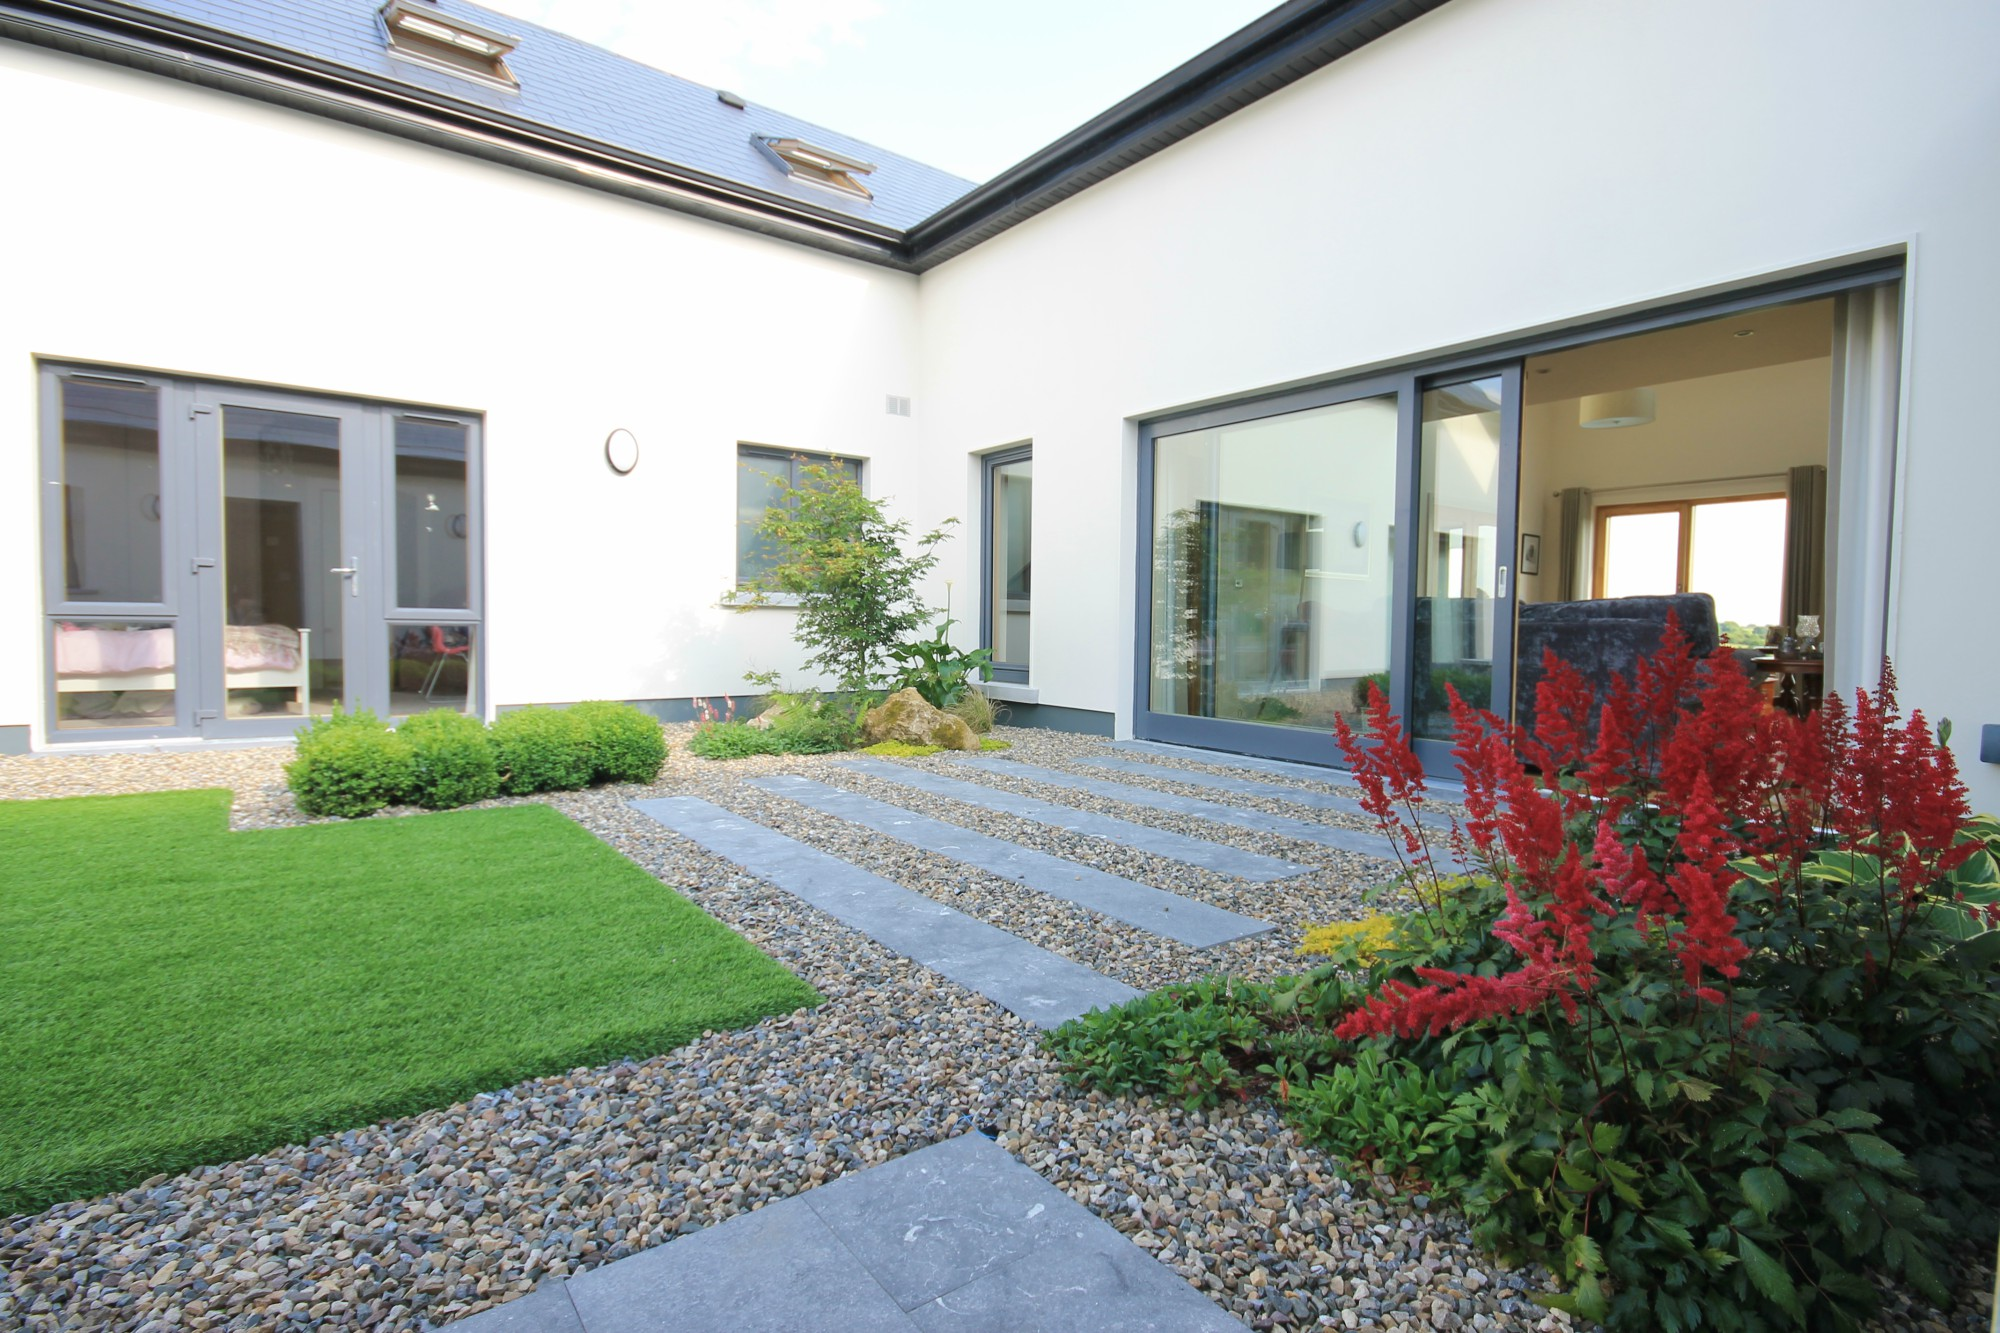 Garden-design-artificial-grass-paving